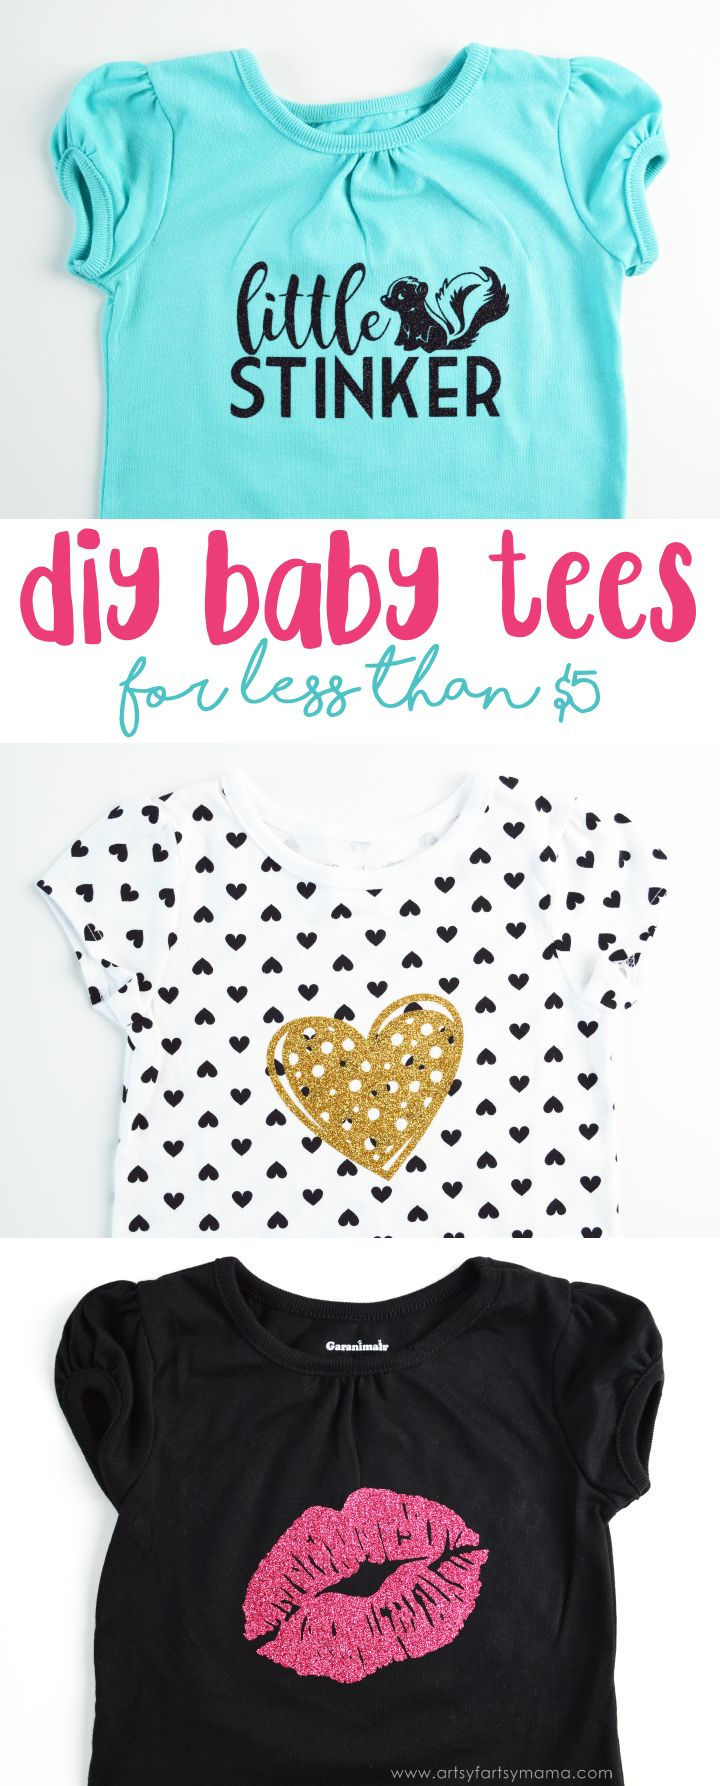 Best DIY Tshirt Ideas With Cricut Explore Images On Pinterest - How to make vinyl decals for clothing